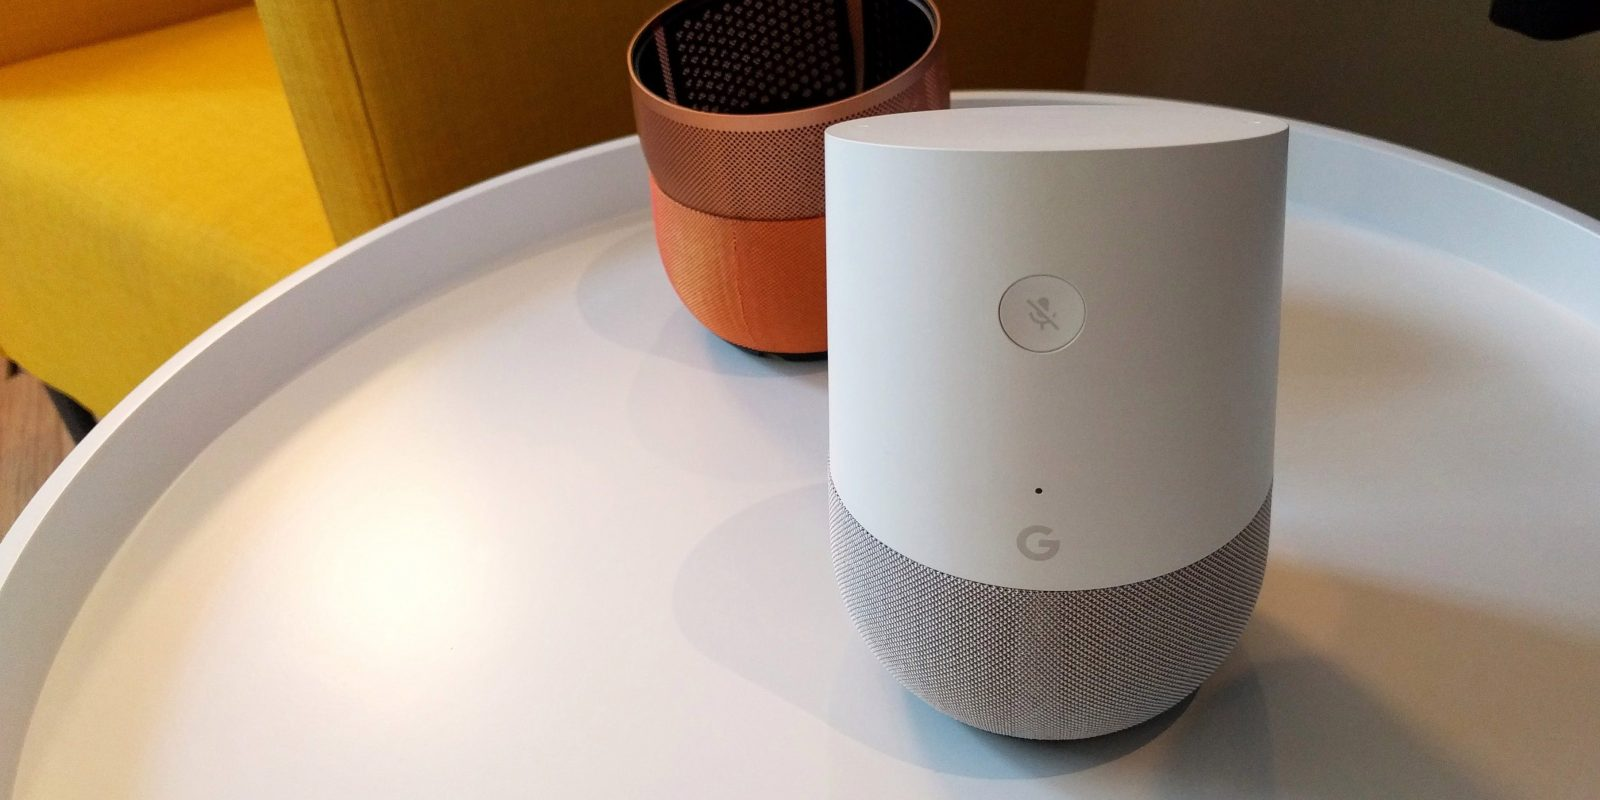 Google Home now features a built-in collection of relaxing